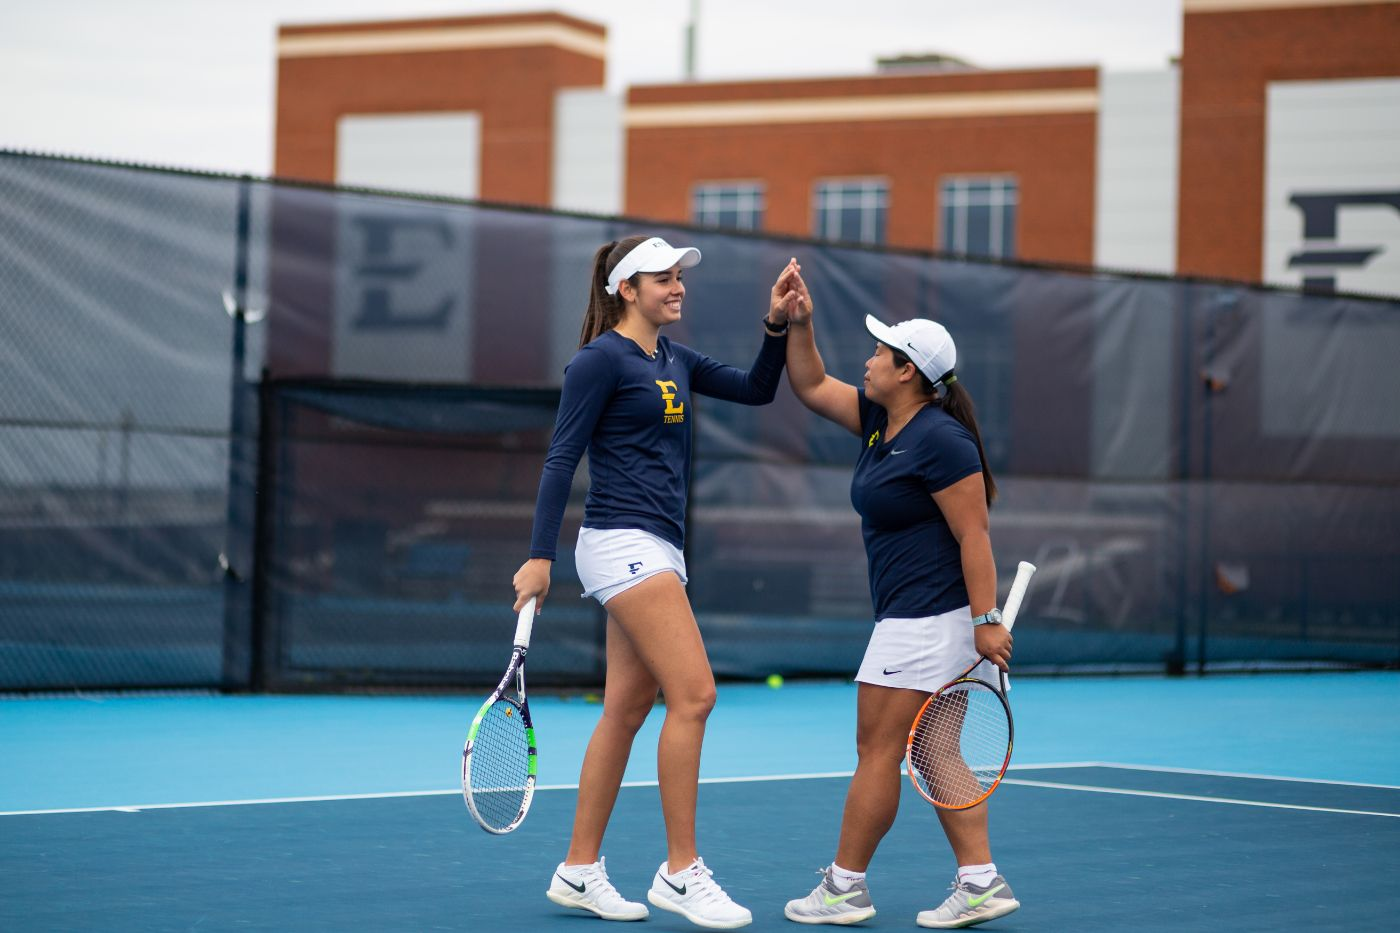 ETSU downs Western Carolina 6-1 on the road